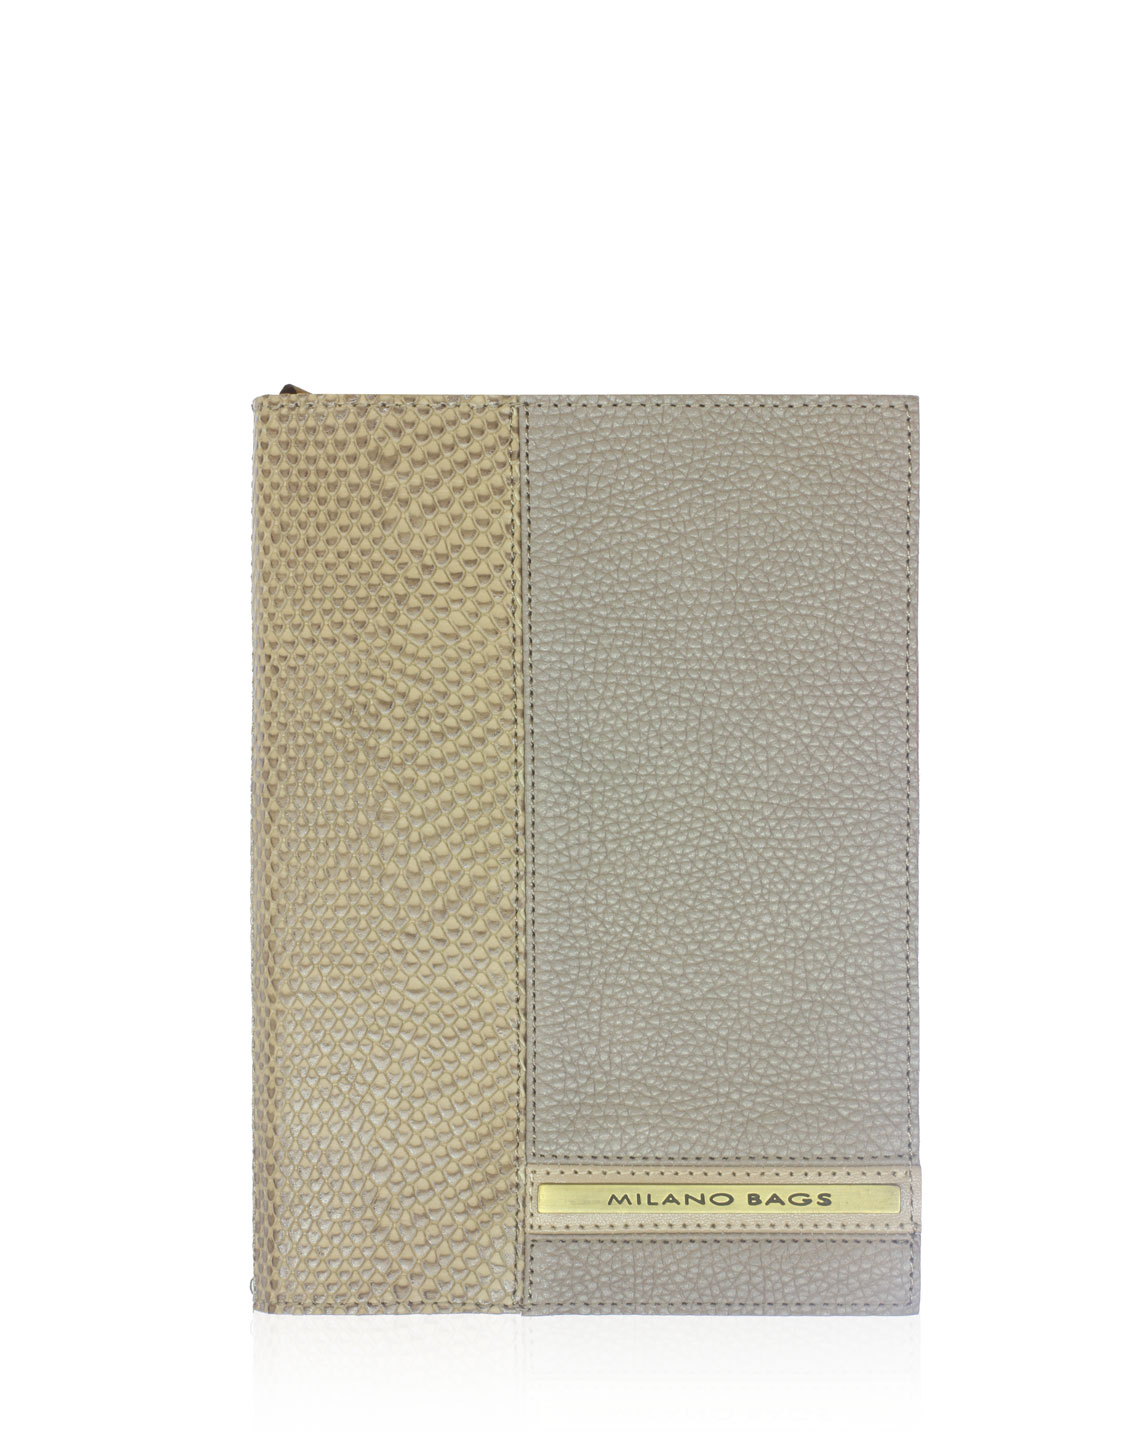 Agenda AG-106 Color Beige